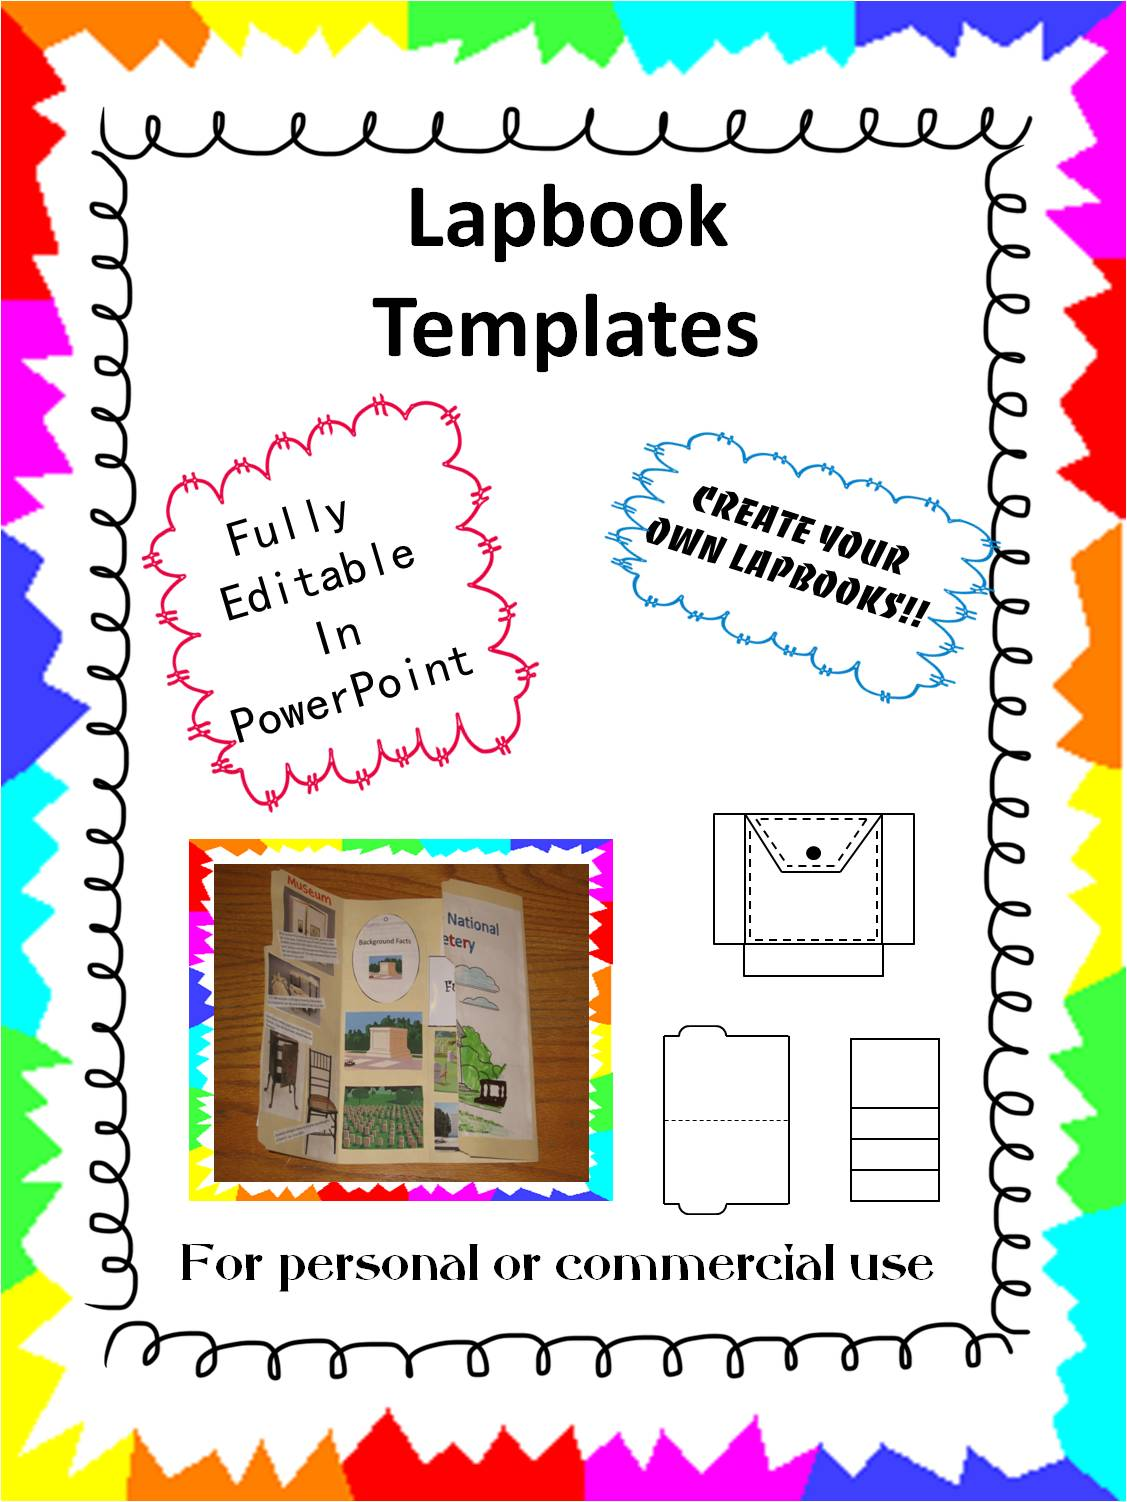 Lapbook Templates for personal or commercial use Kathy Hutto yGDFzGnO